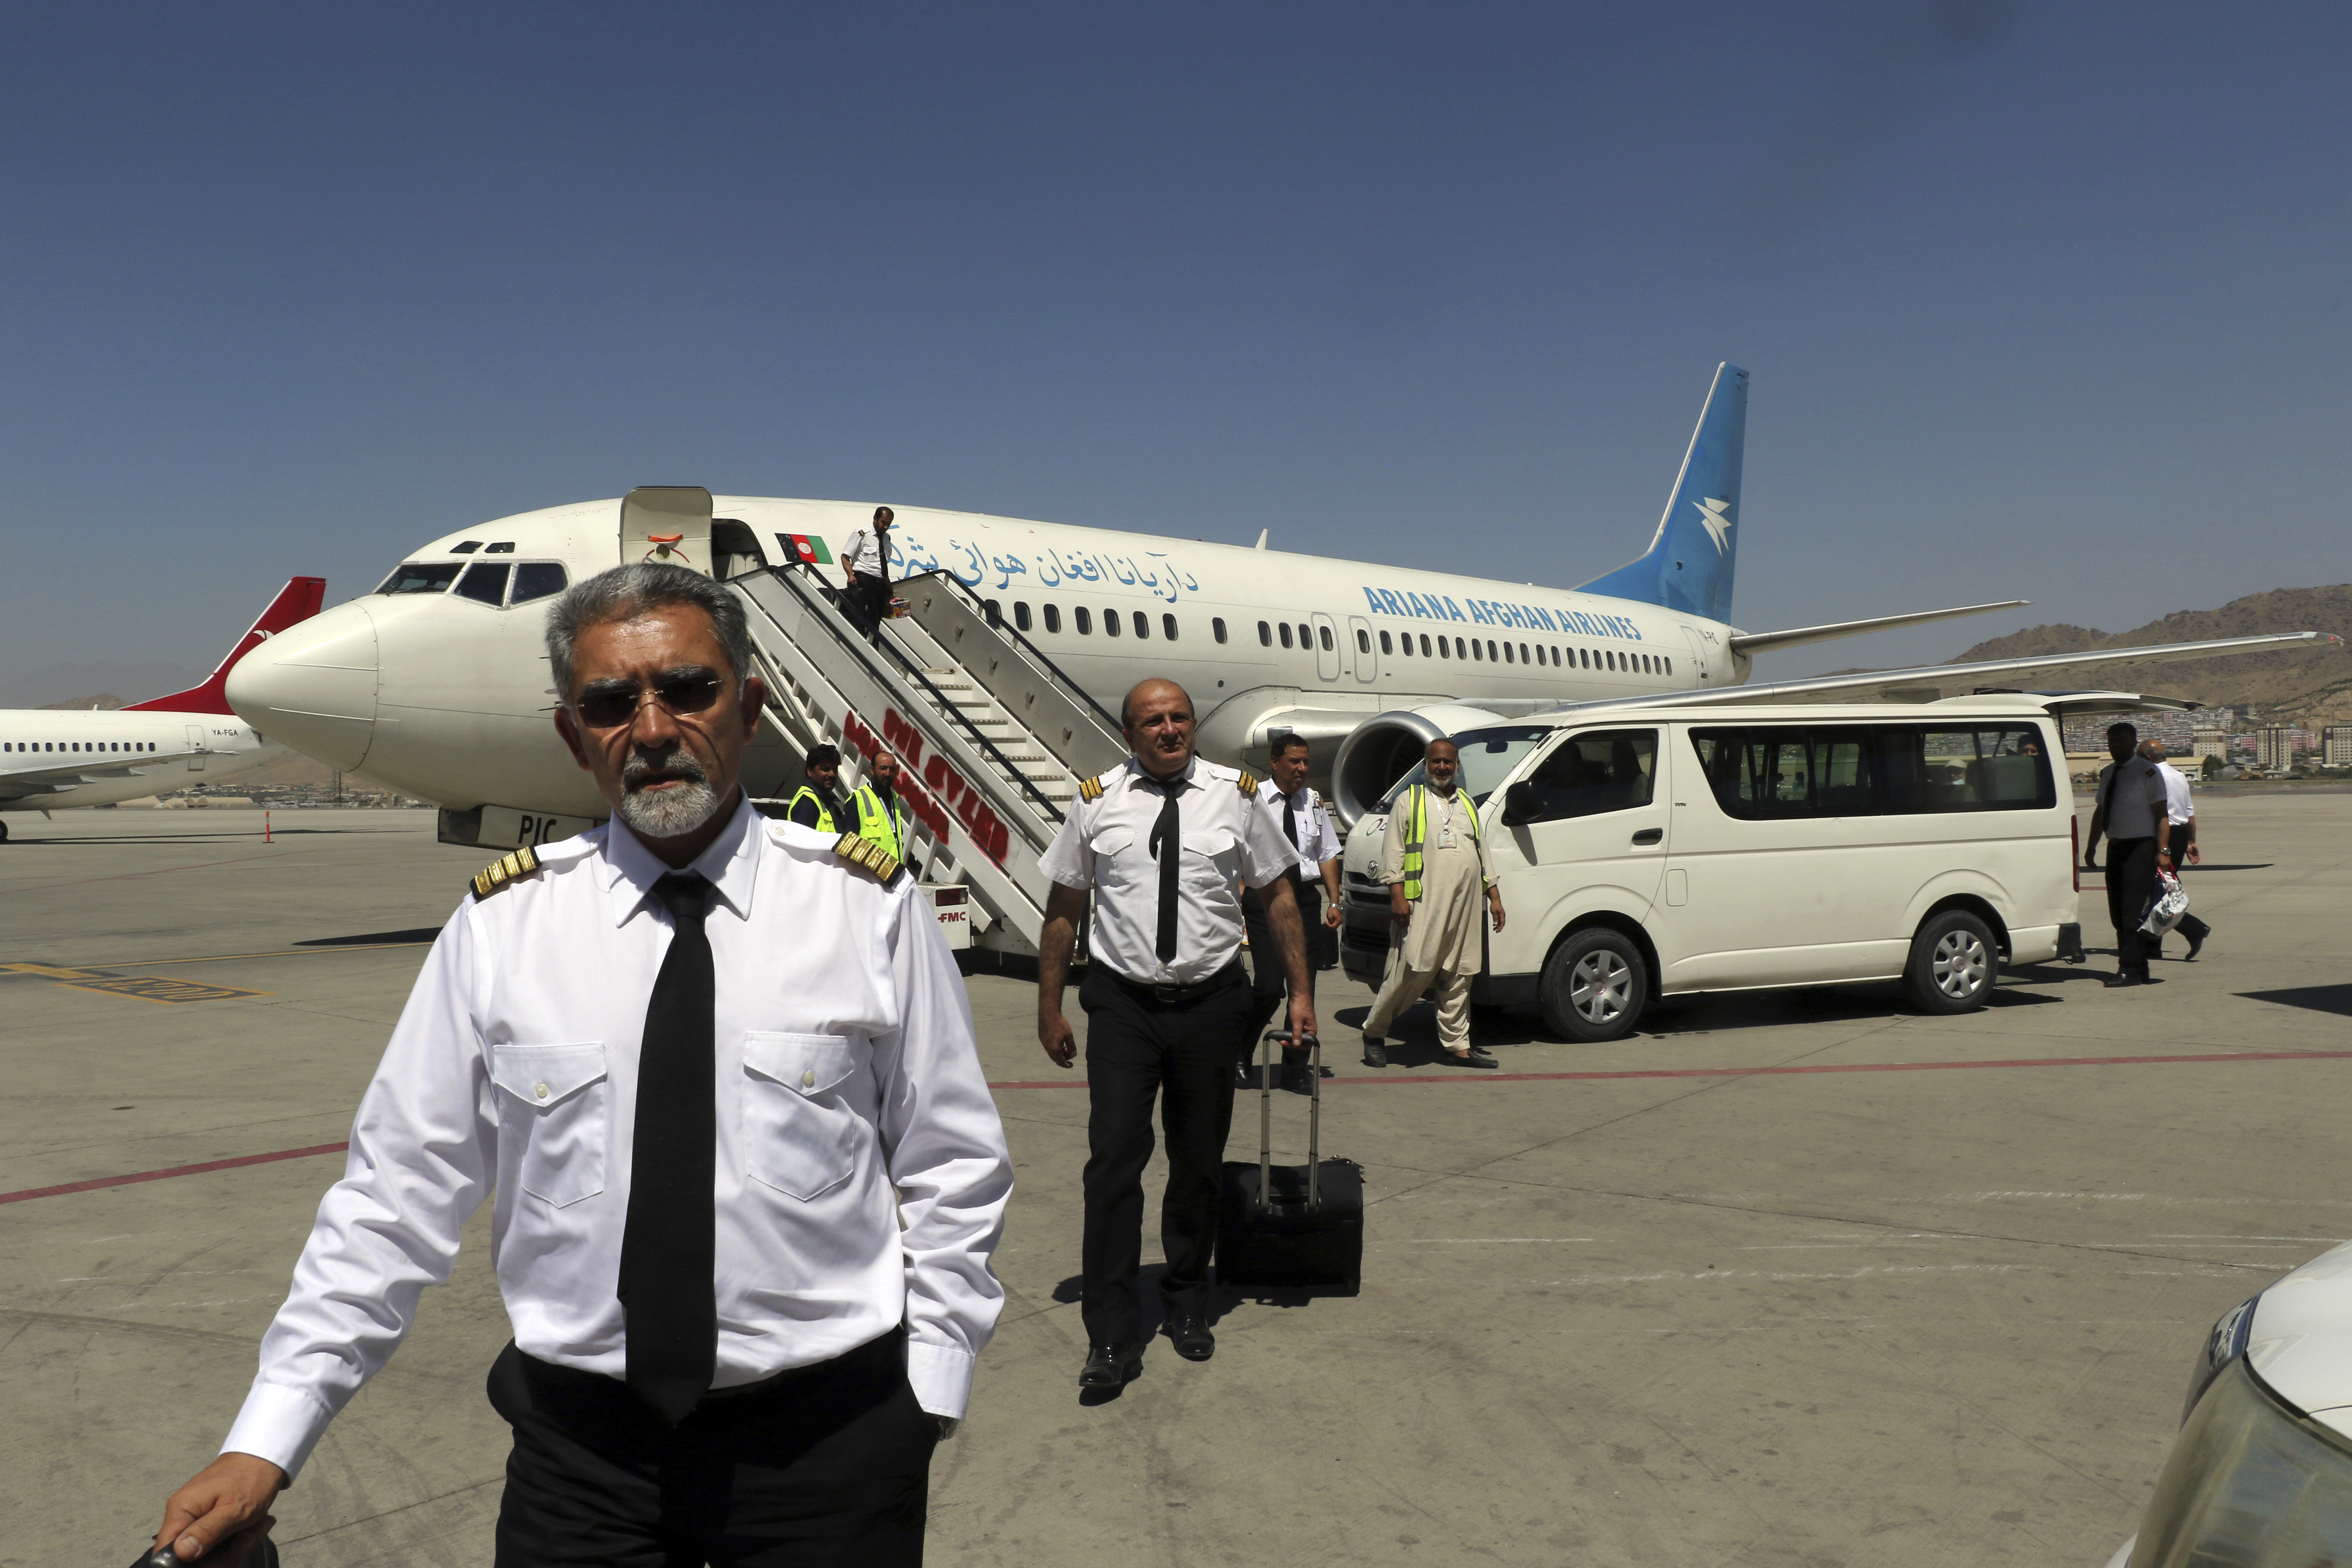 Pilots of Ariana Afghan Airlines walk on the tarmac after landing at Hamid Karzai International Airport in Kabul, Afghanistan, on Sept. 5, 2021.